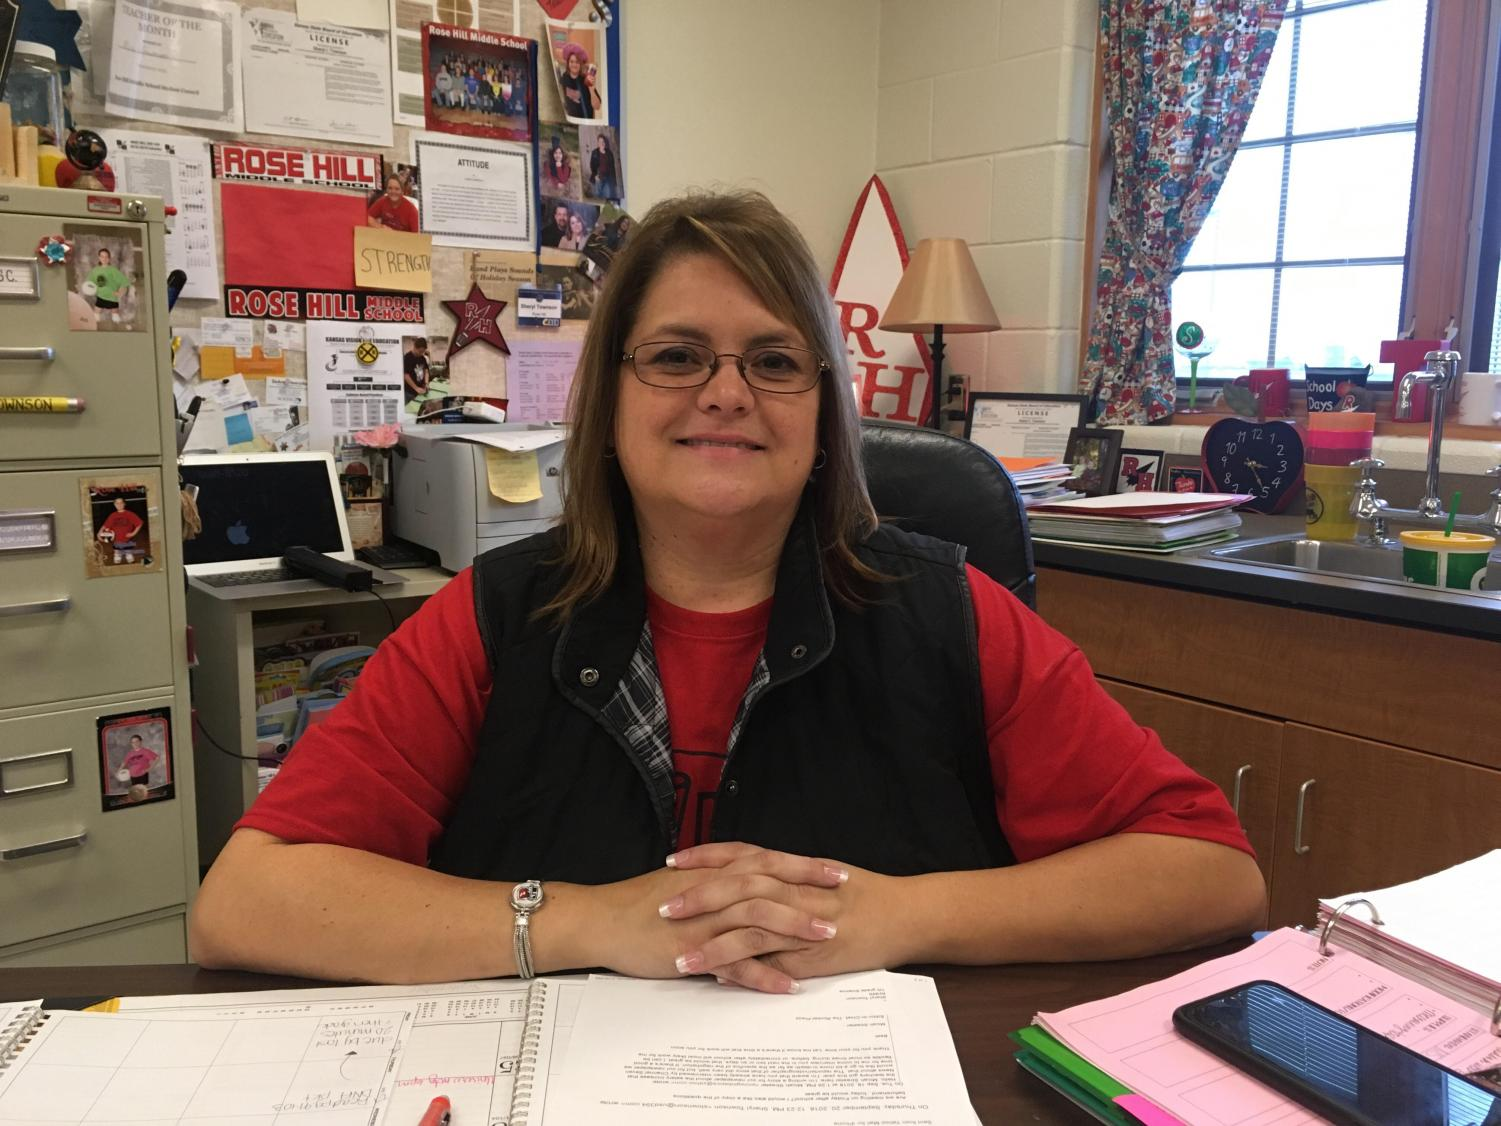 Middle School Science Teacher Sheryl Townson is a member of the negotiating team that negotiated a 5.6 percent raise for the teachers in the district. It was the first substantial raise in 20 years.